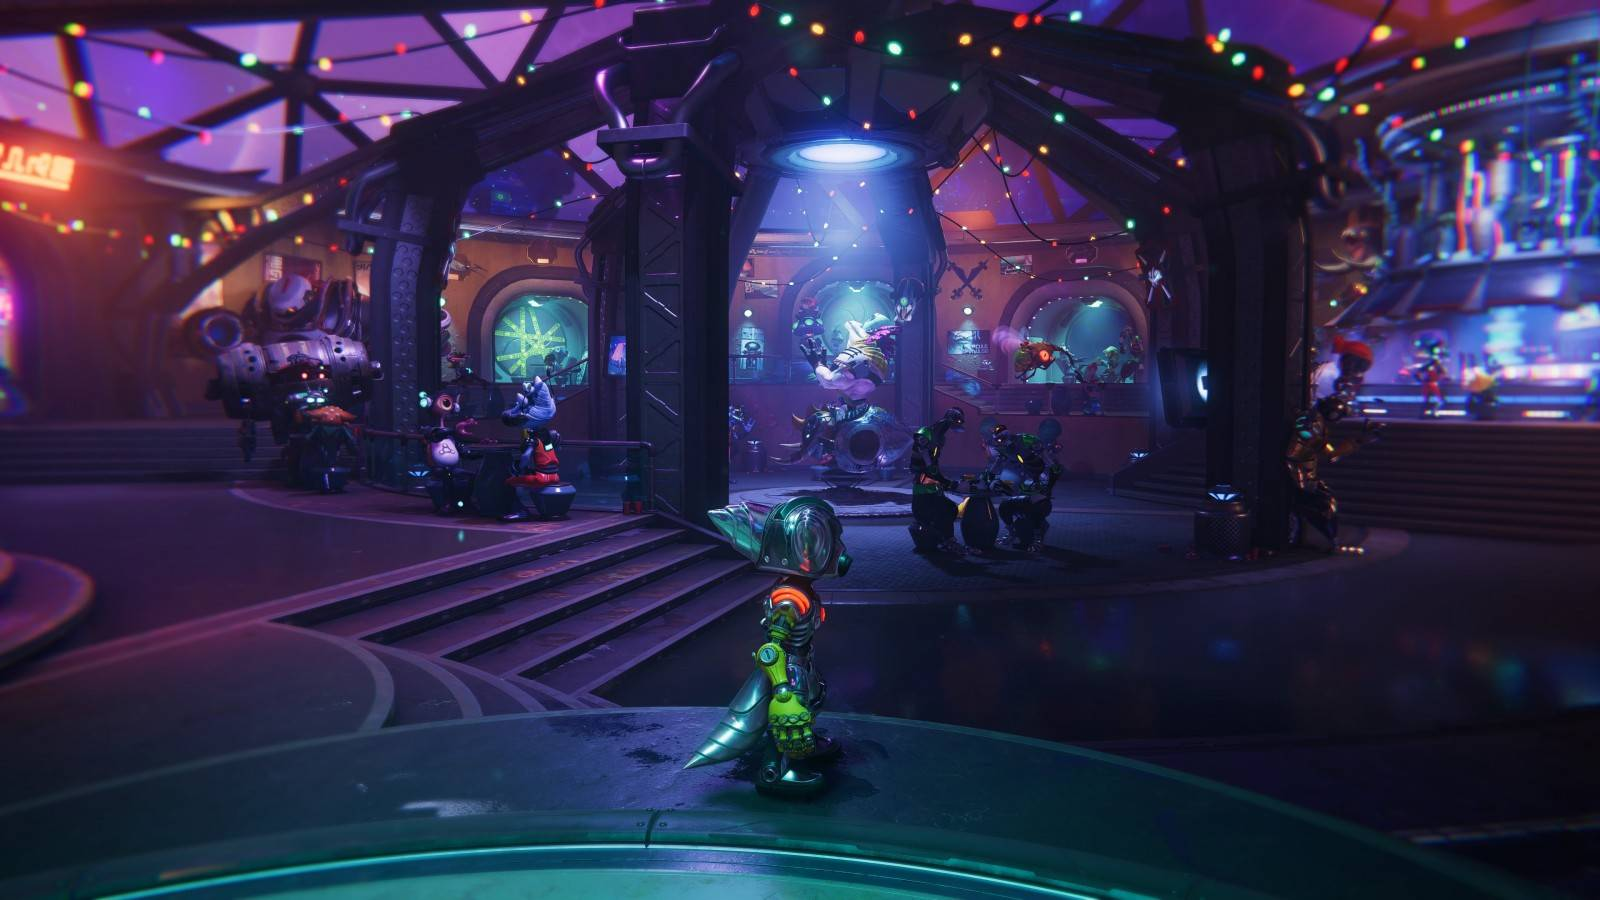 Reseña: Ratchet and Clank: Rift Apart (PlayStation 5) 11